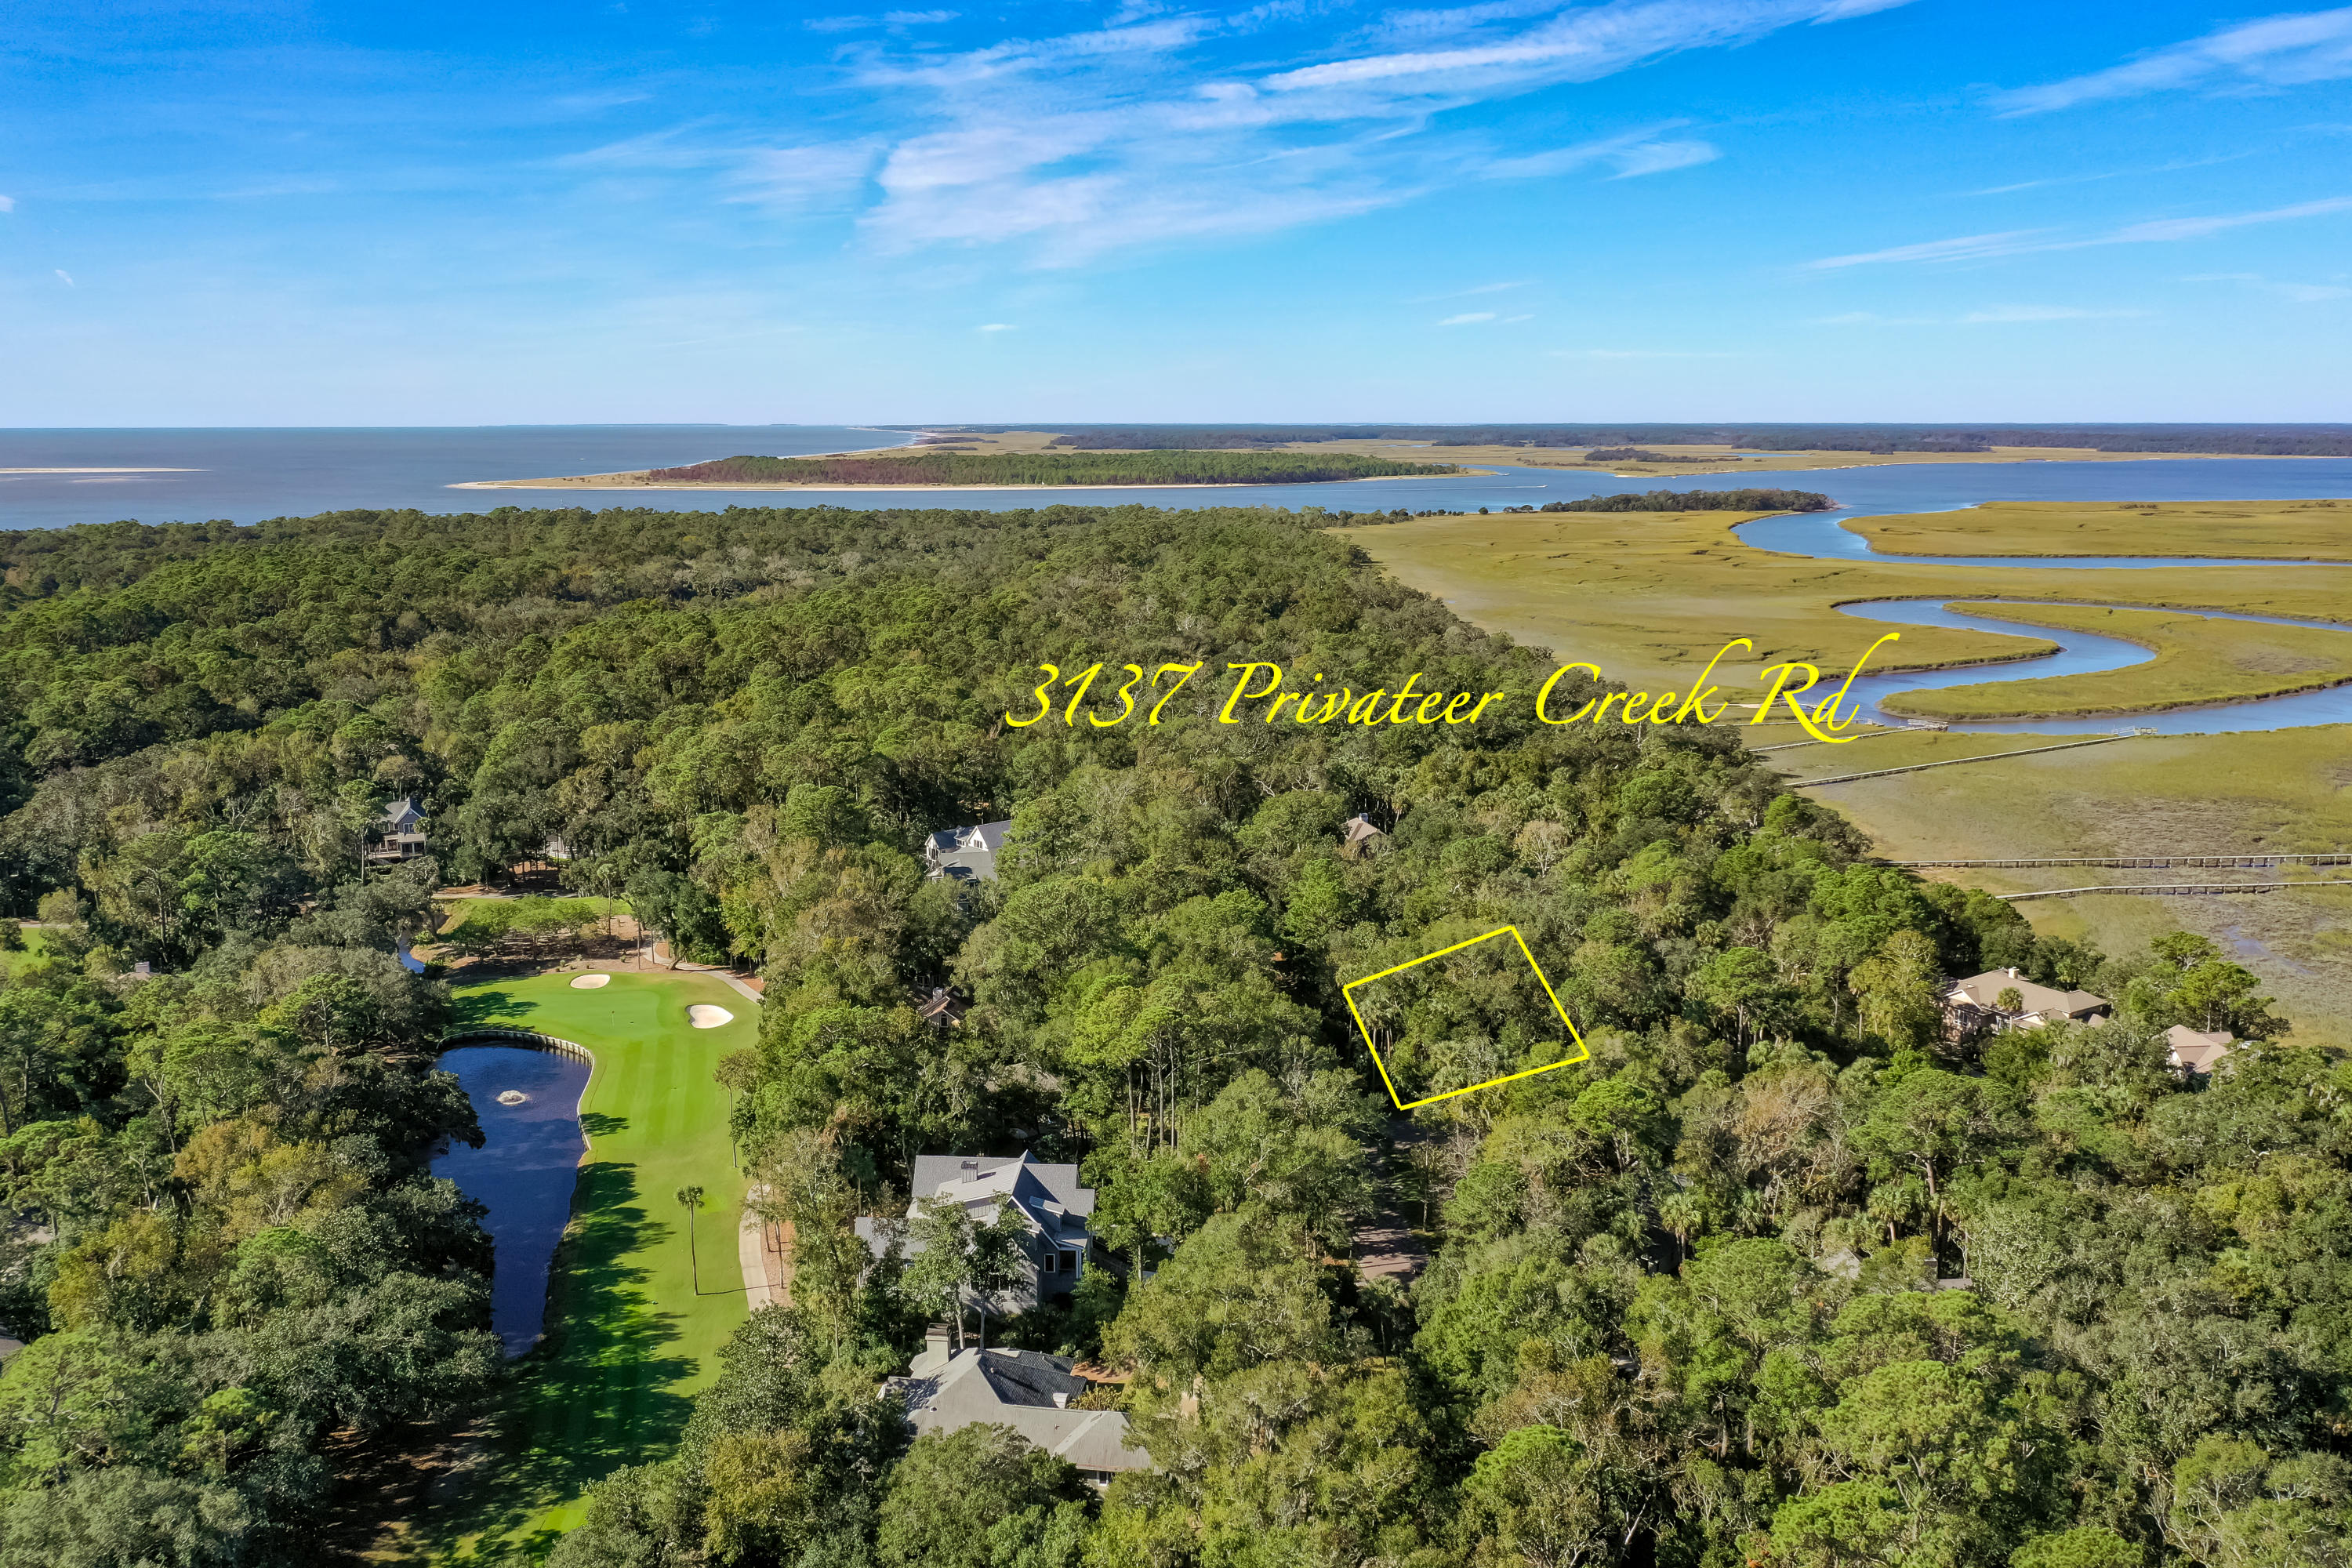 3137 Privateer Creek Road Seabrook Island, SC 29455